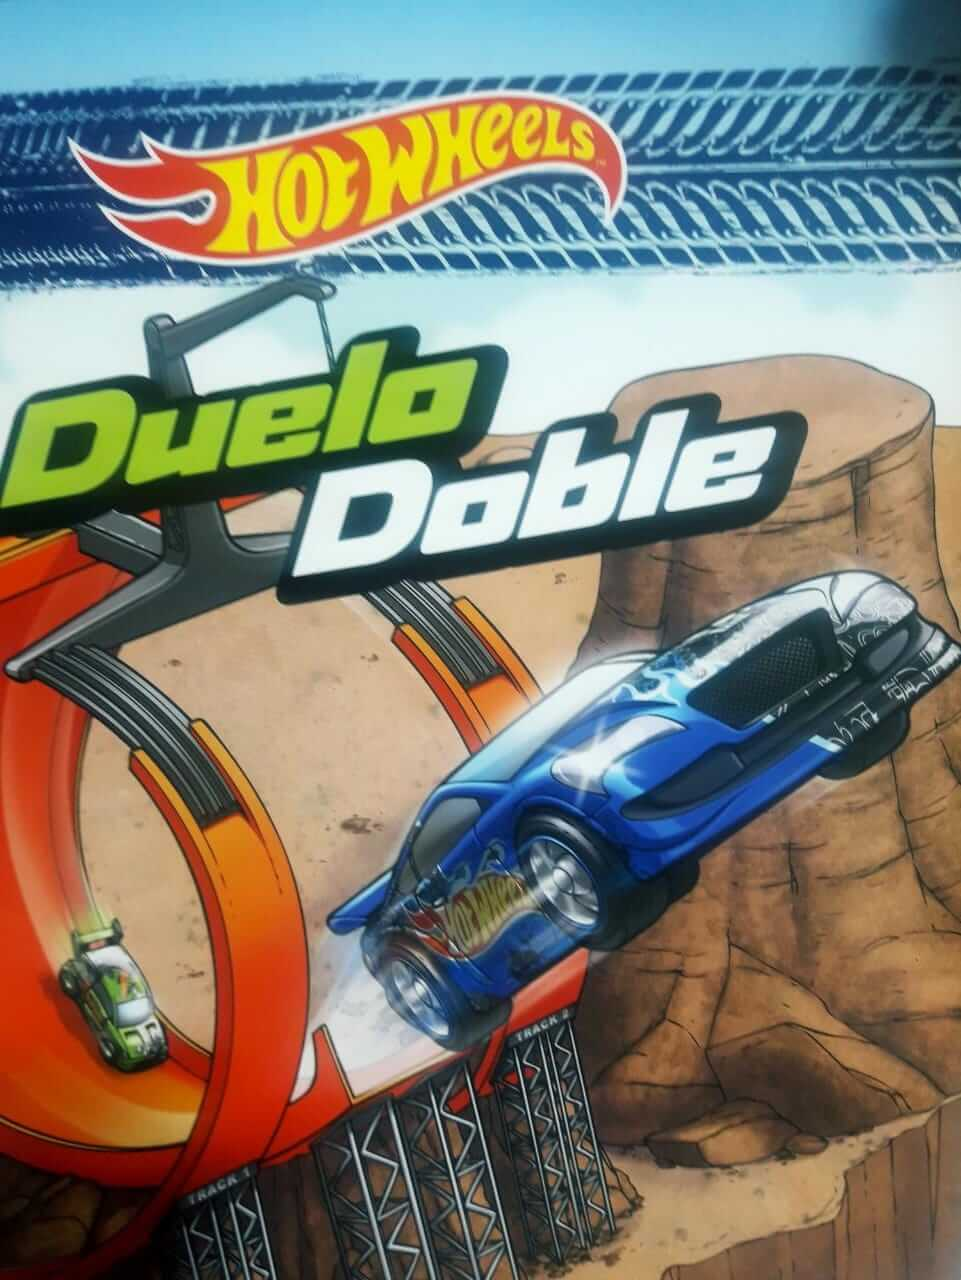 LIBRO HOT WHEELS DUELO DOBLE